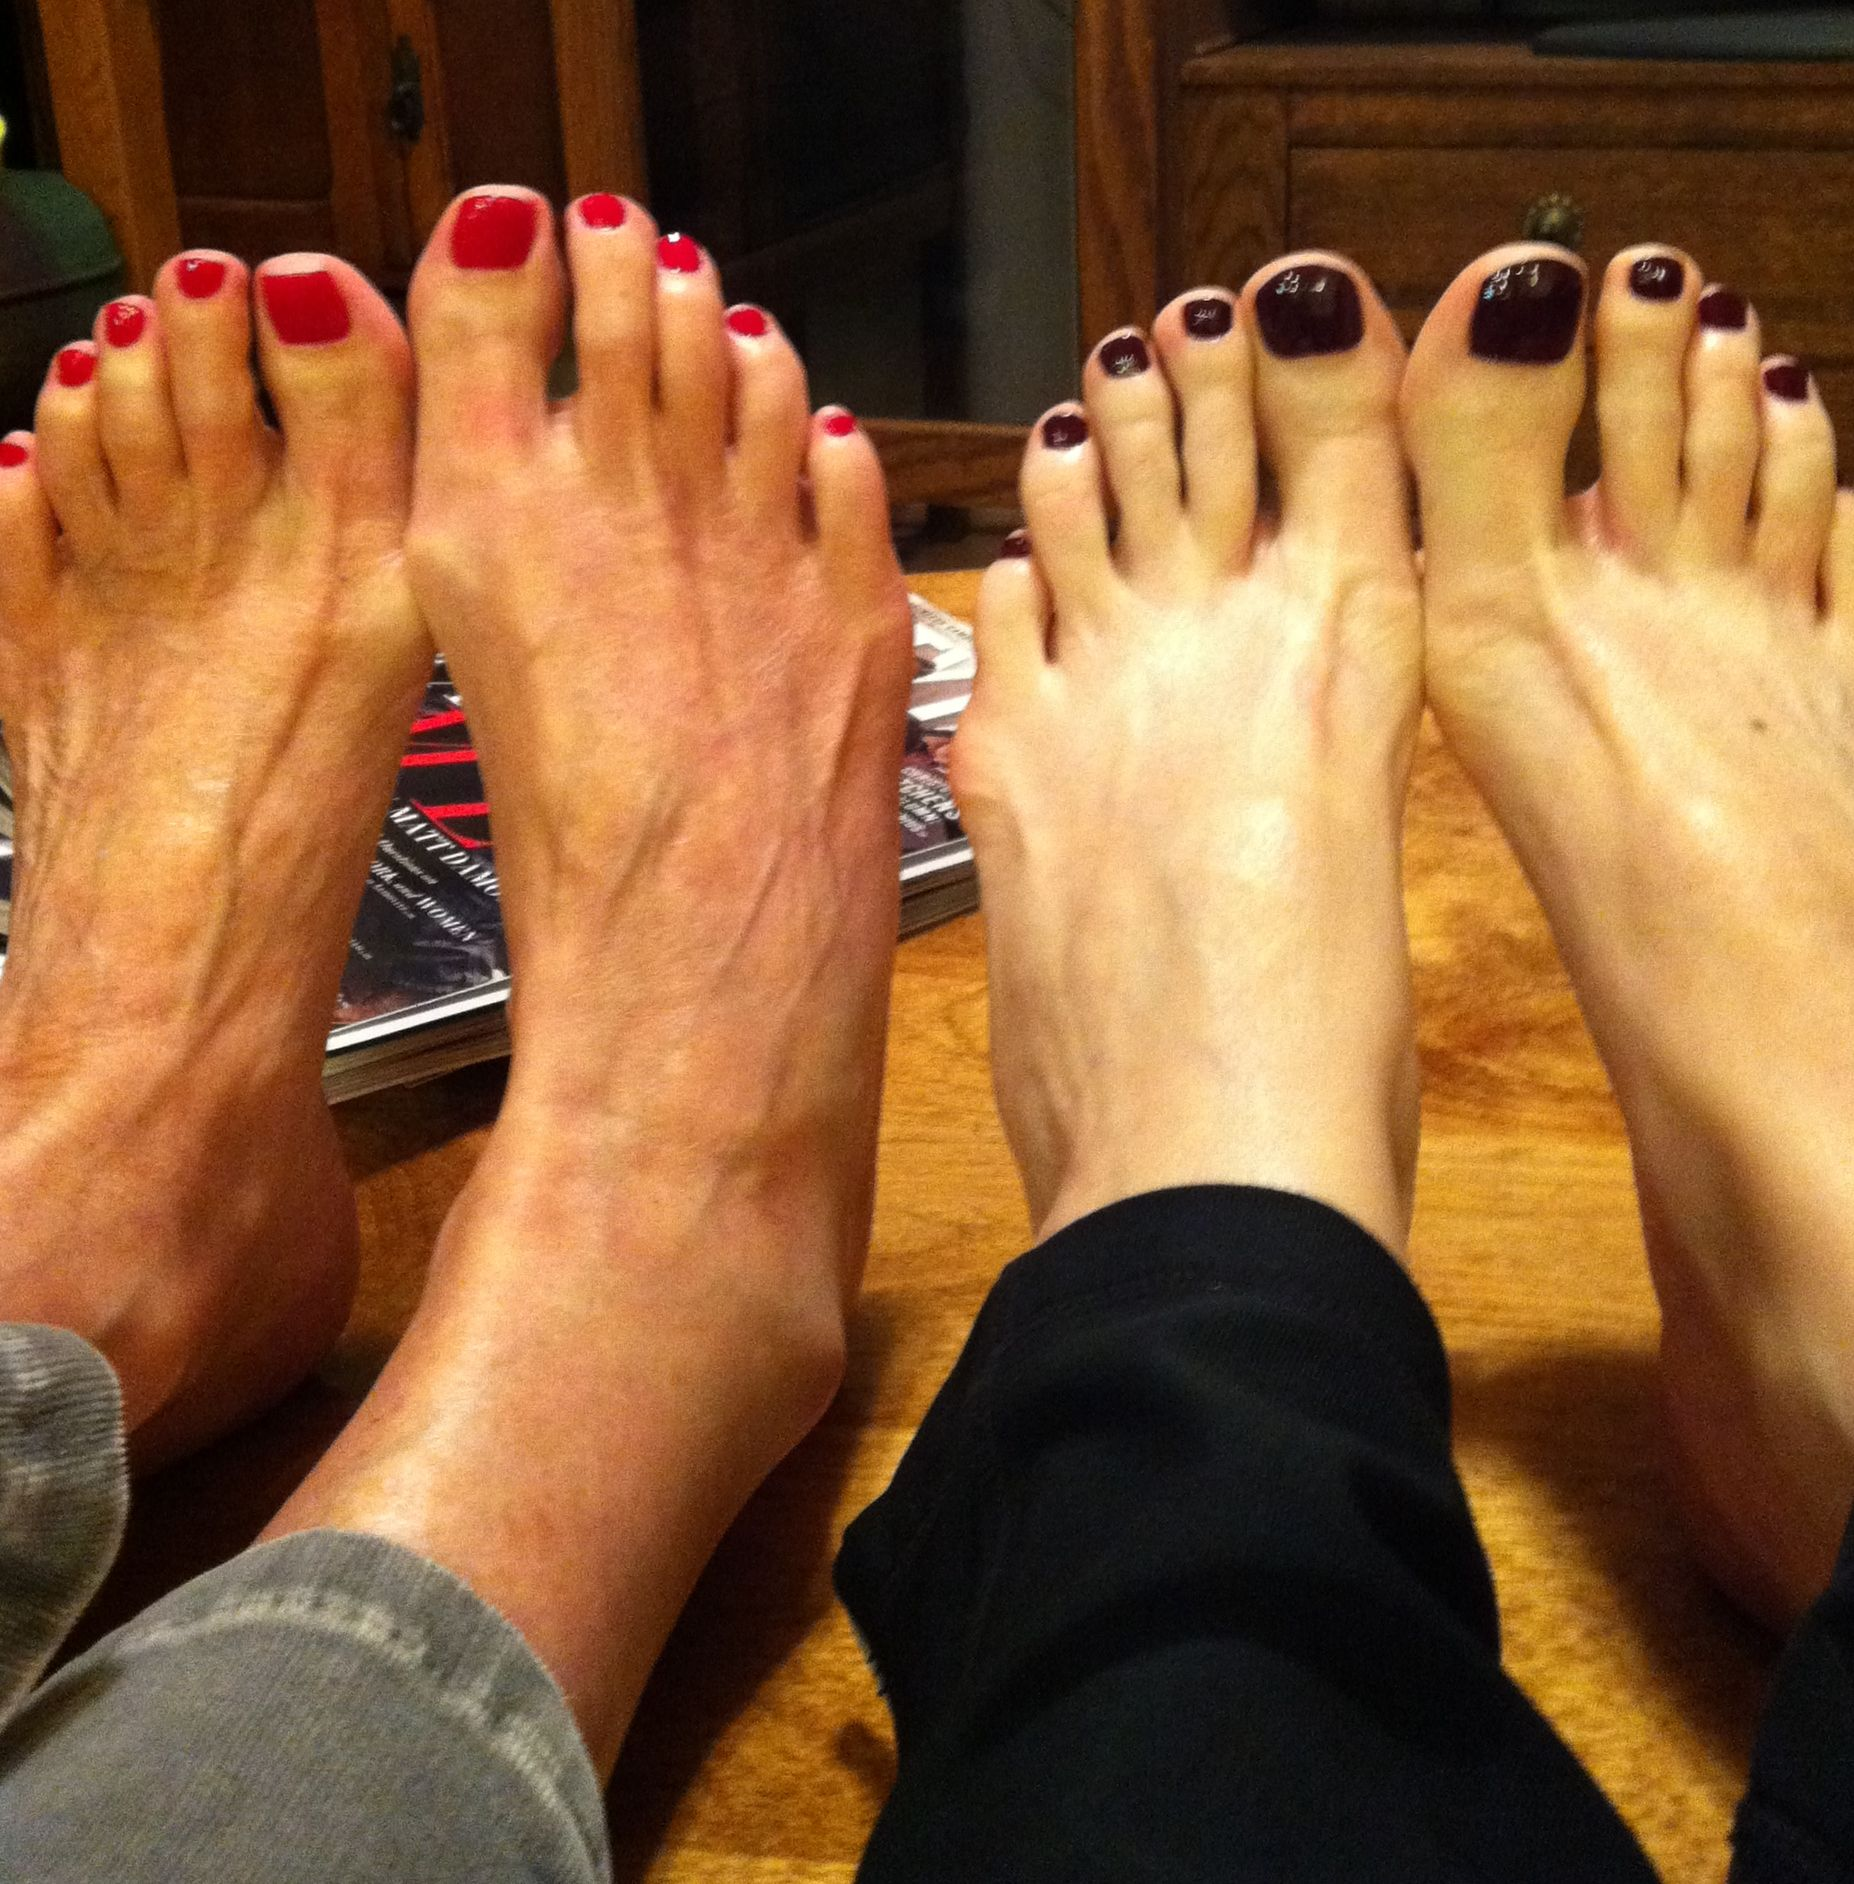 Mom and daughter pedi...pretty toes for my surgery.